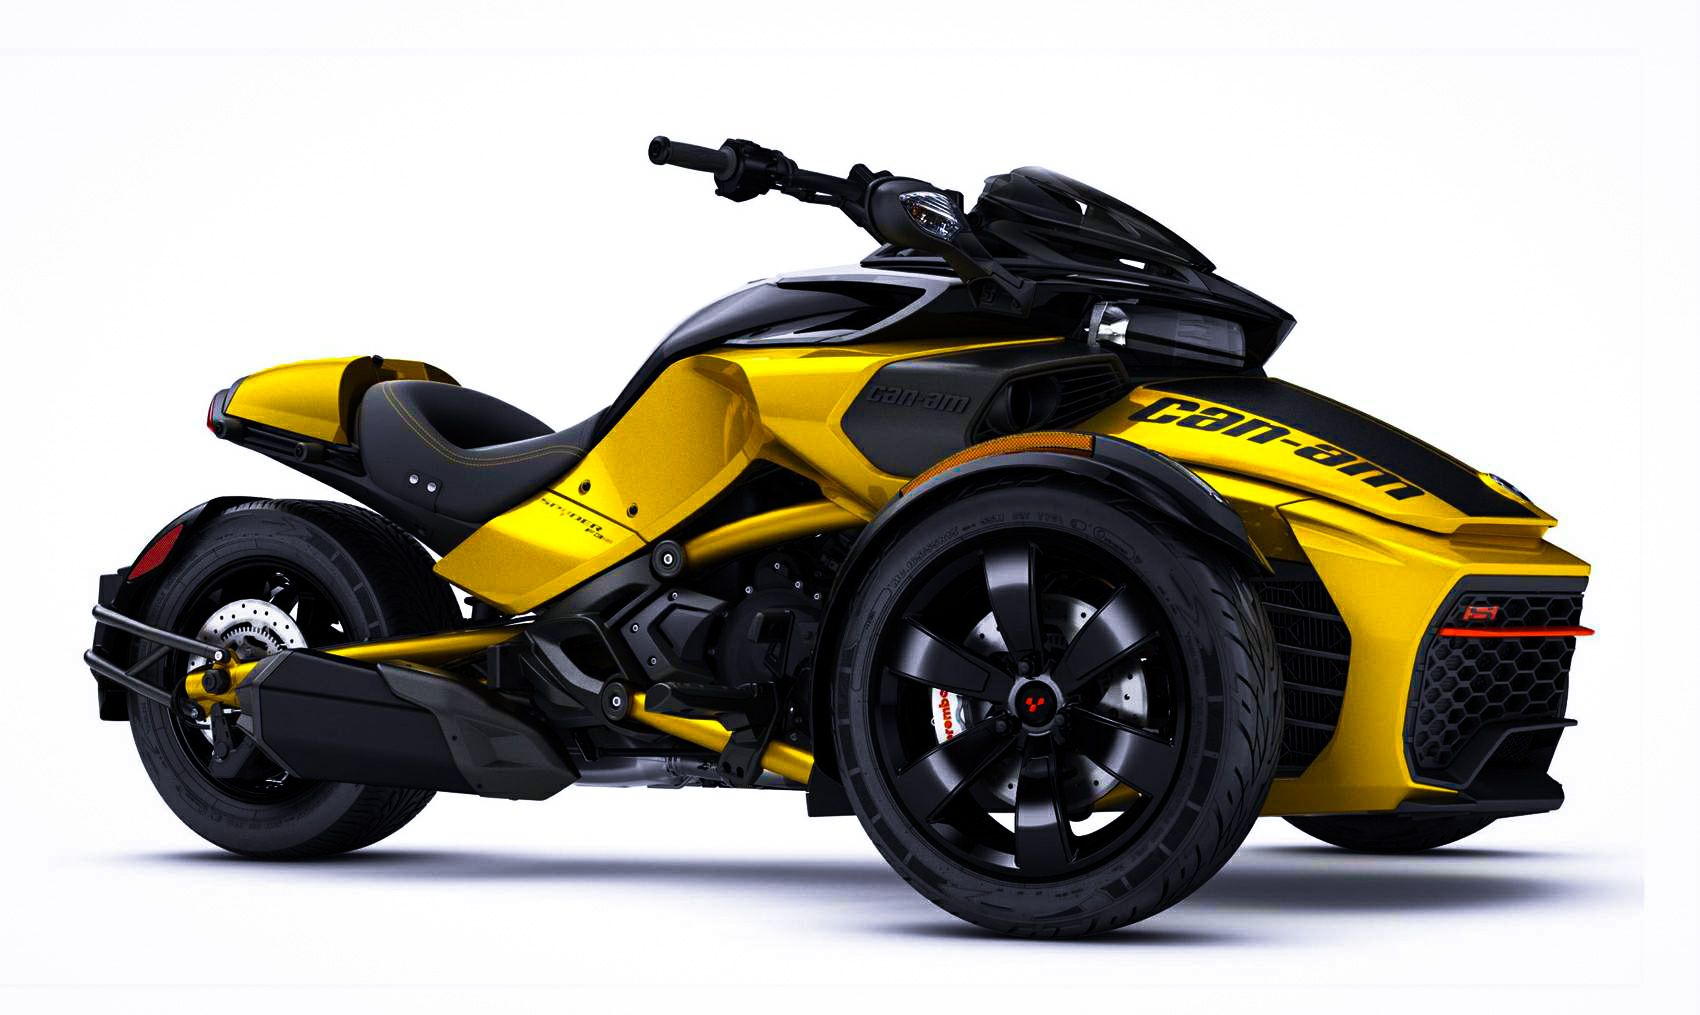 For the can am spyder gets a sport mode that turns off the traction control to allow controlled drifts and a new daytona 500 edition will available